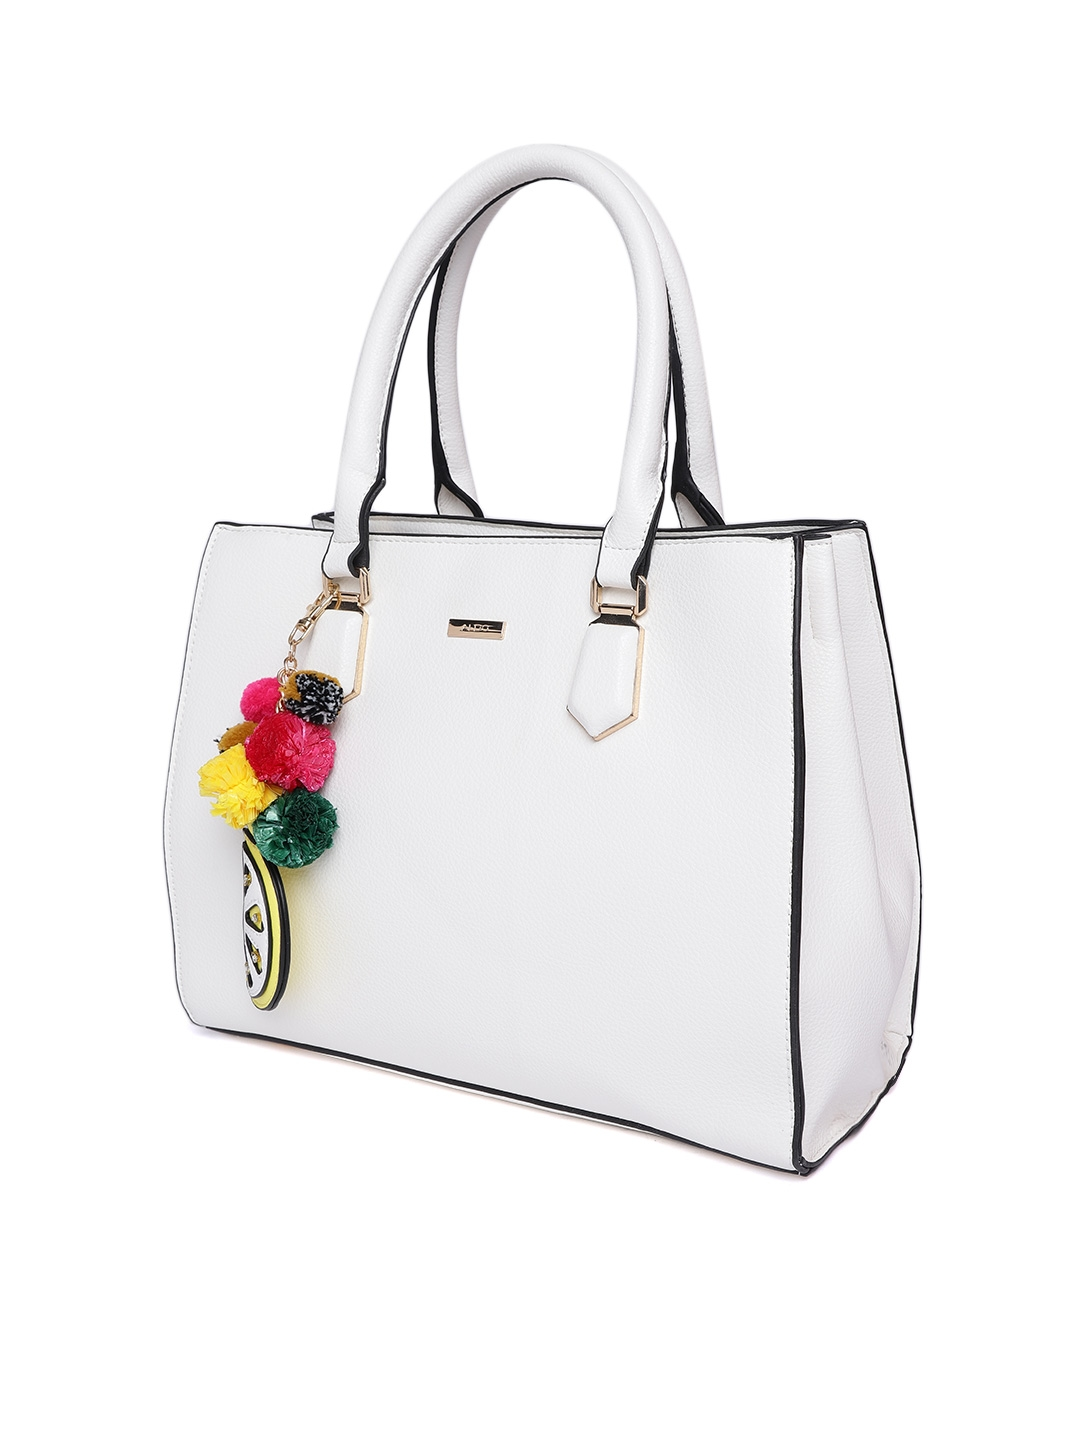 73a3f266e31 Buy ALDO White Solid Handheld Bag With Detachable Sling Strap ...